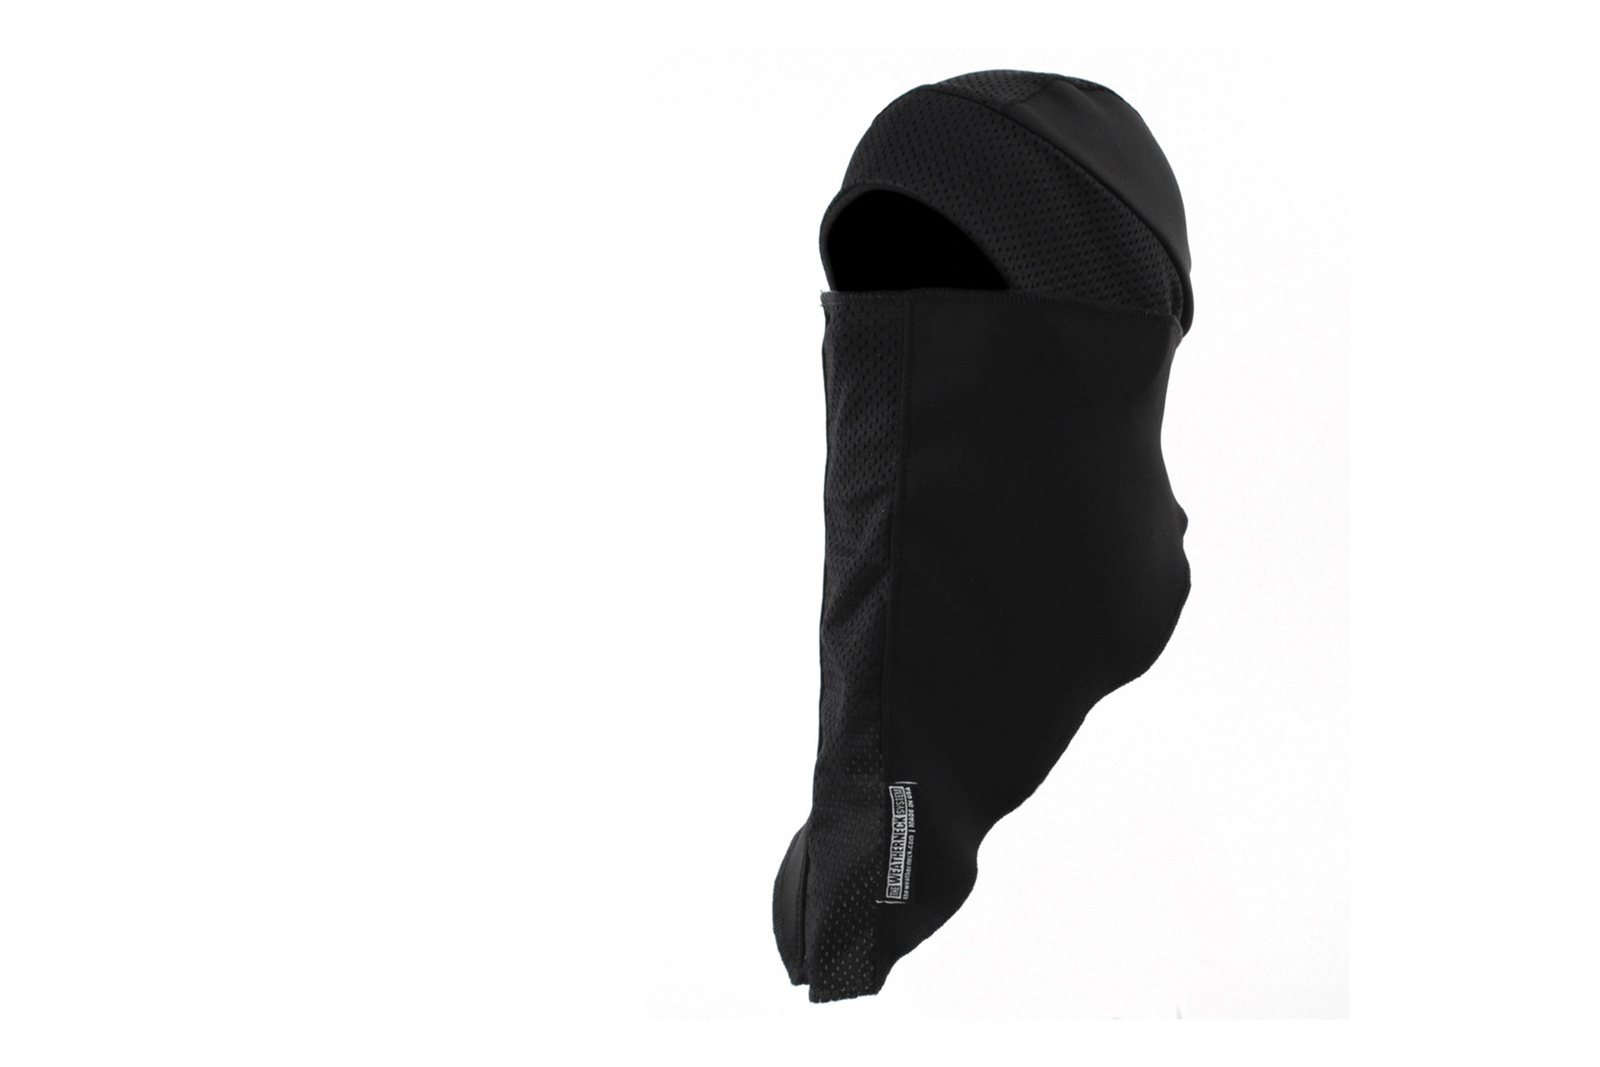 Fix-Its Sticks creator Brian Davis recently launched yet another Kickstarter campaign. This time, it's for the latest version of his Weatherneck convertible balaclava. Photo: Weatherneck.